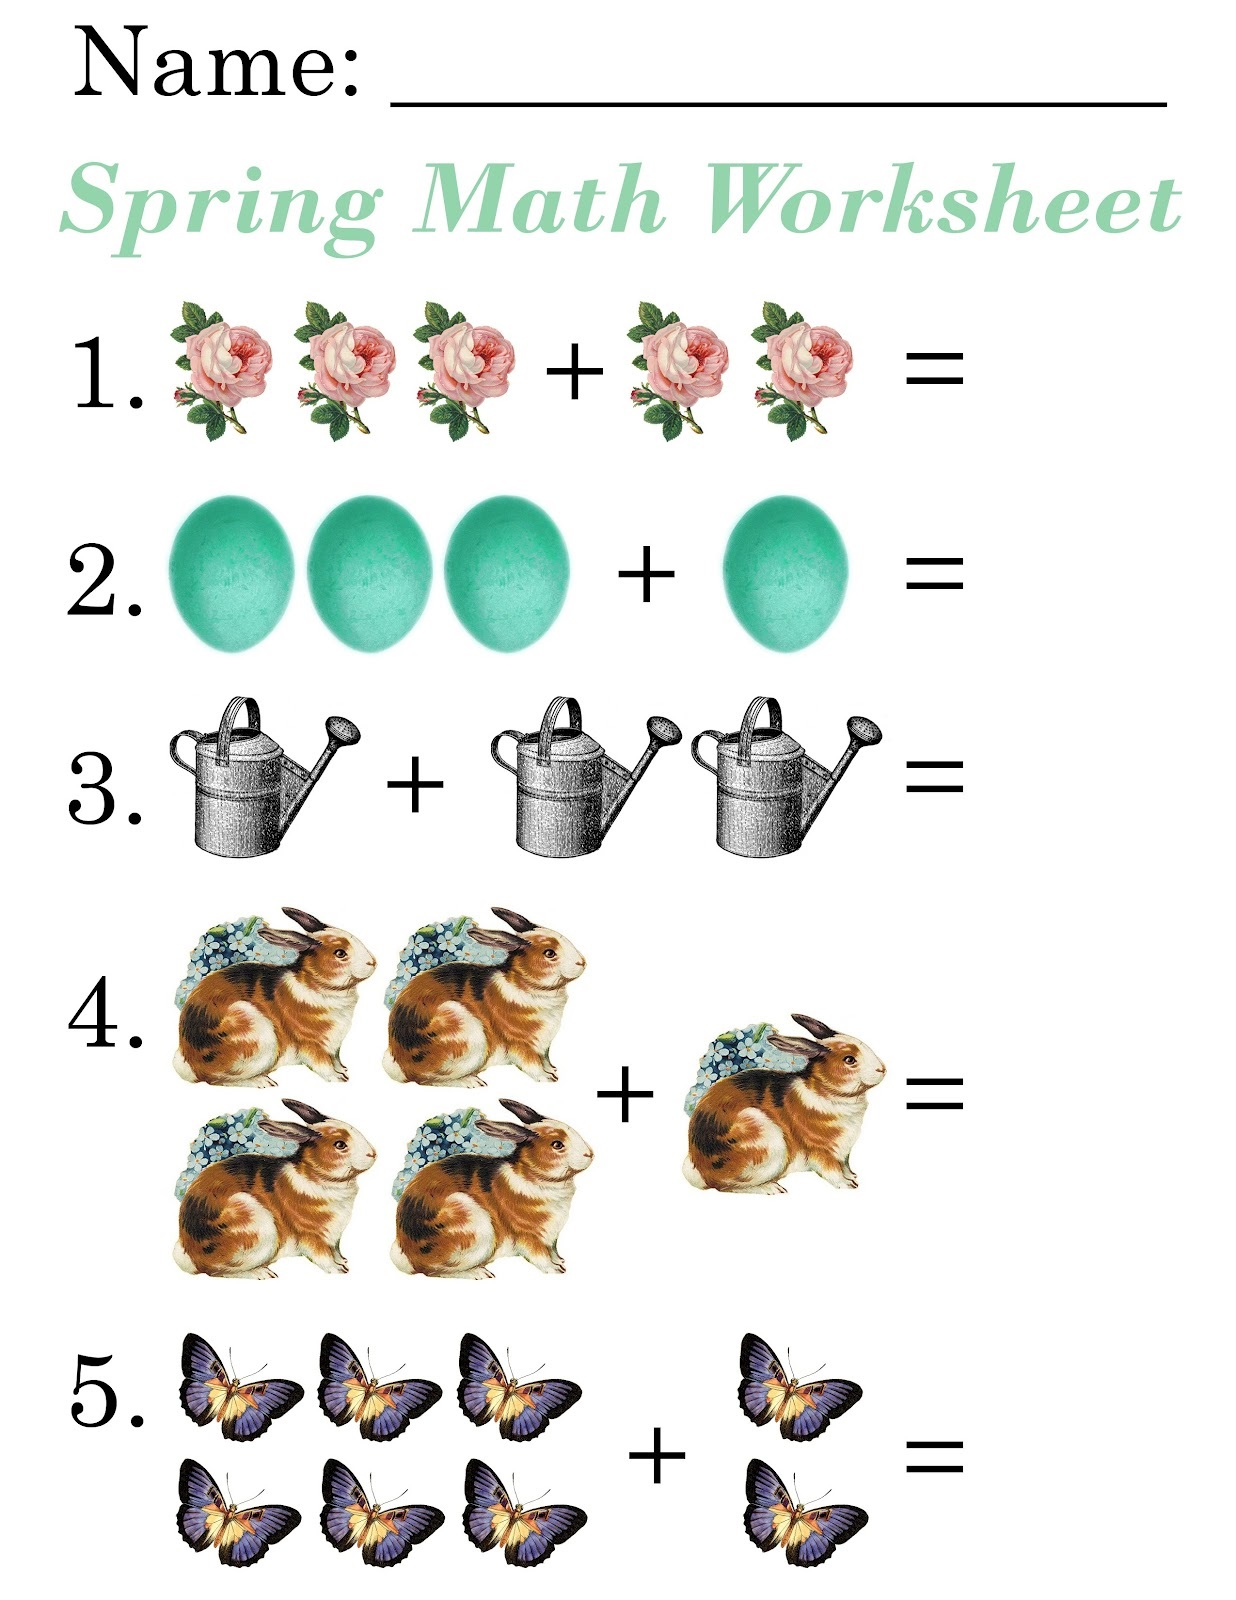 Worksheets For 5 Years Old Kids